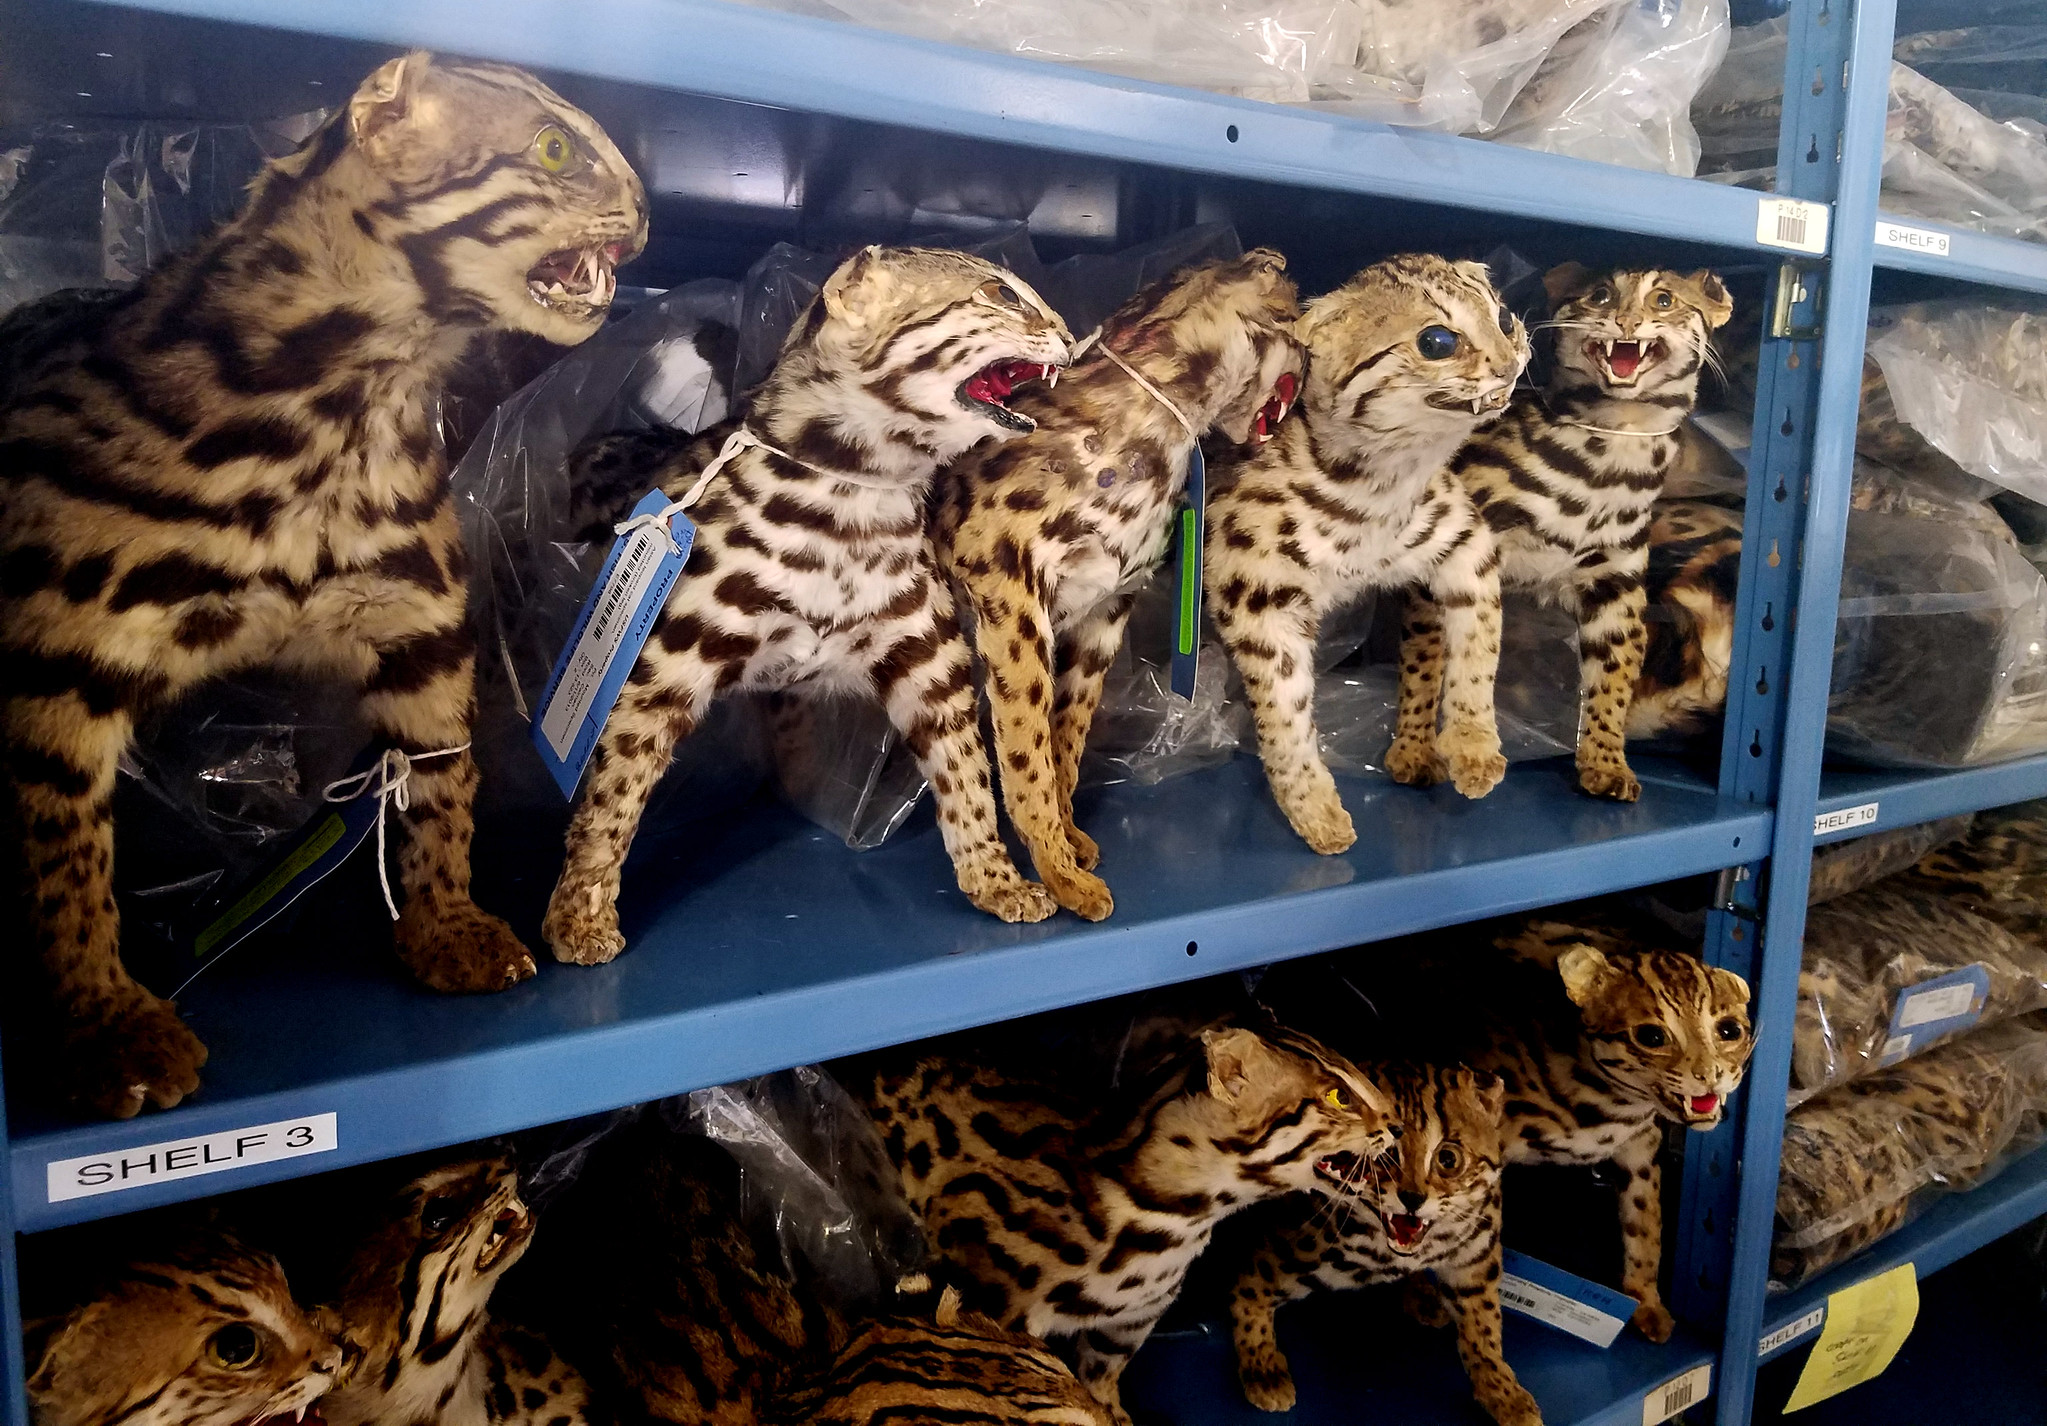 online wildlife traffickers